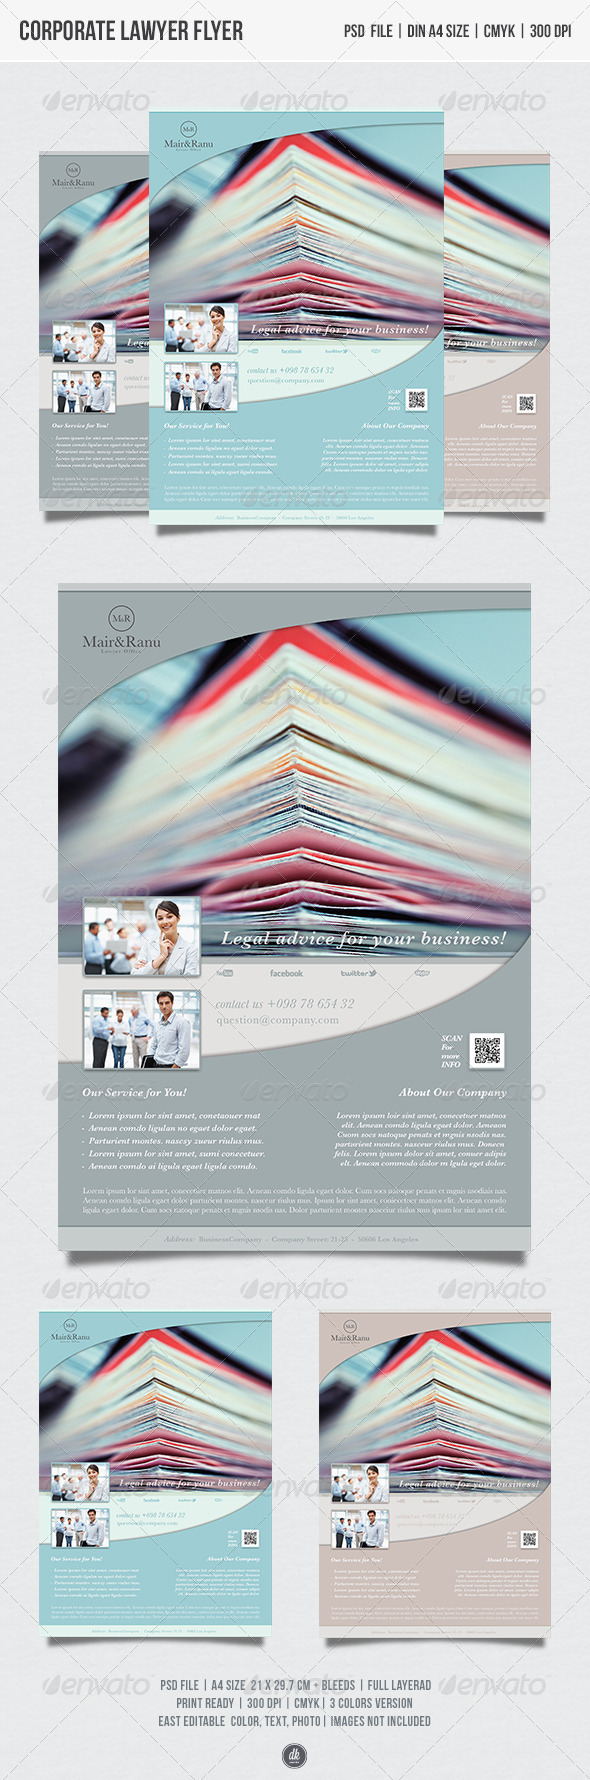 GraphicRiver Corporate Lawyer Flyer 5429302